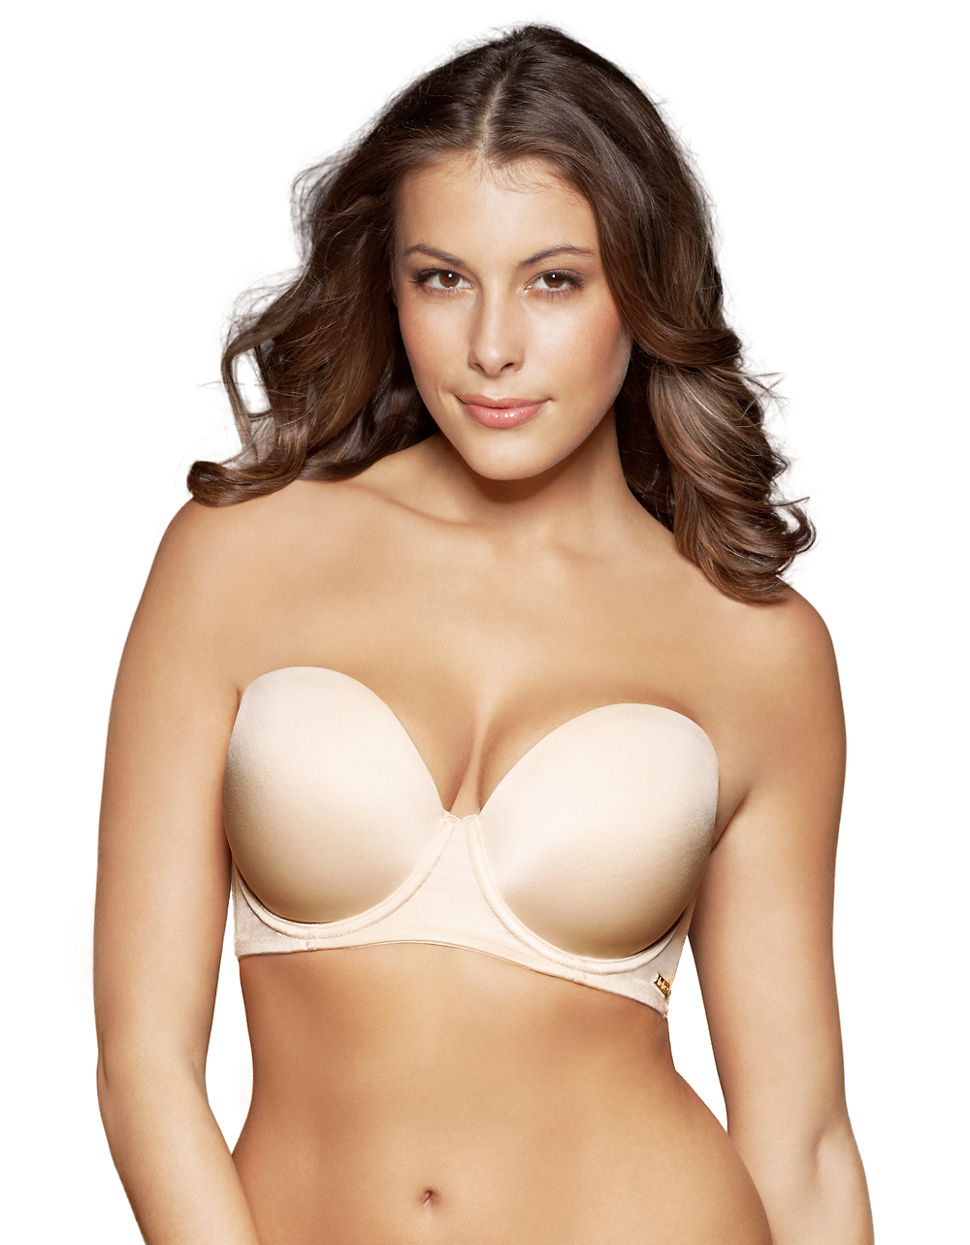 Simply remarkable fine line lingerie pity, that